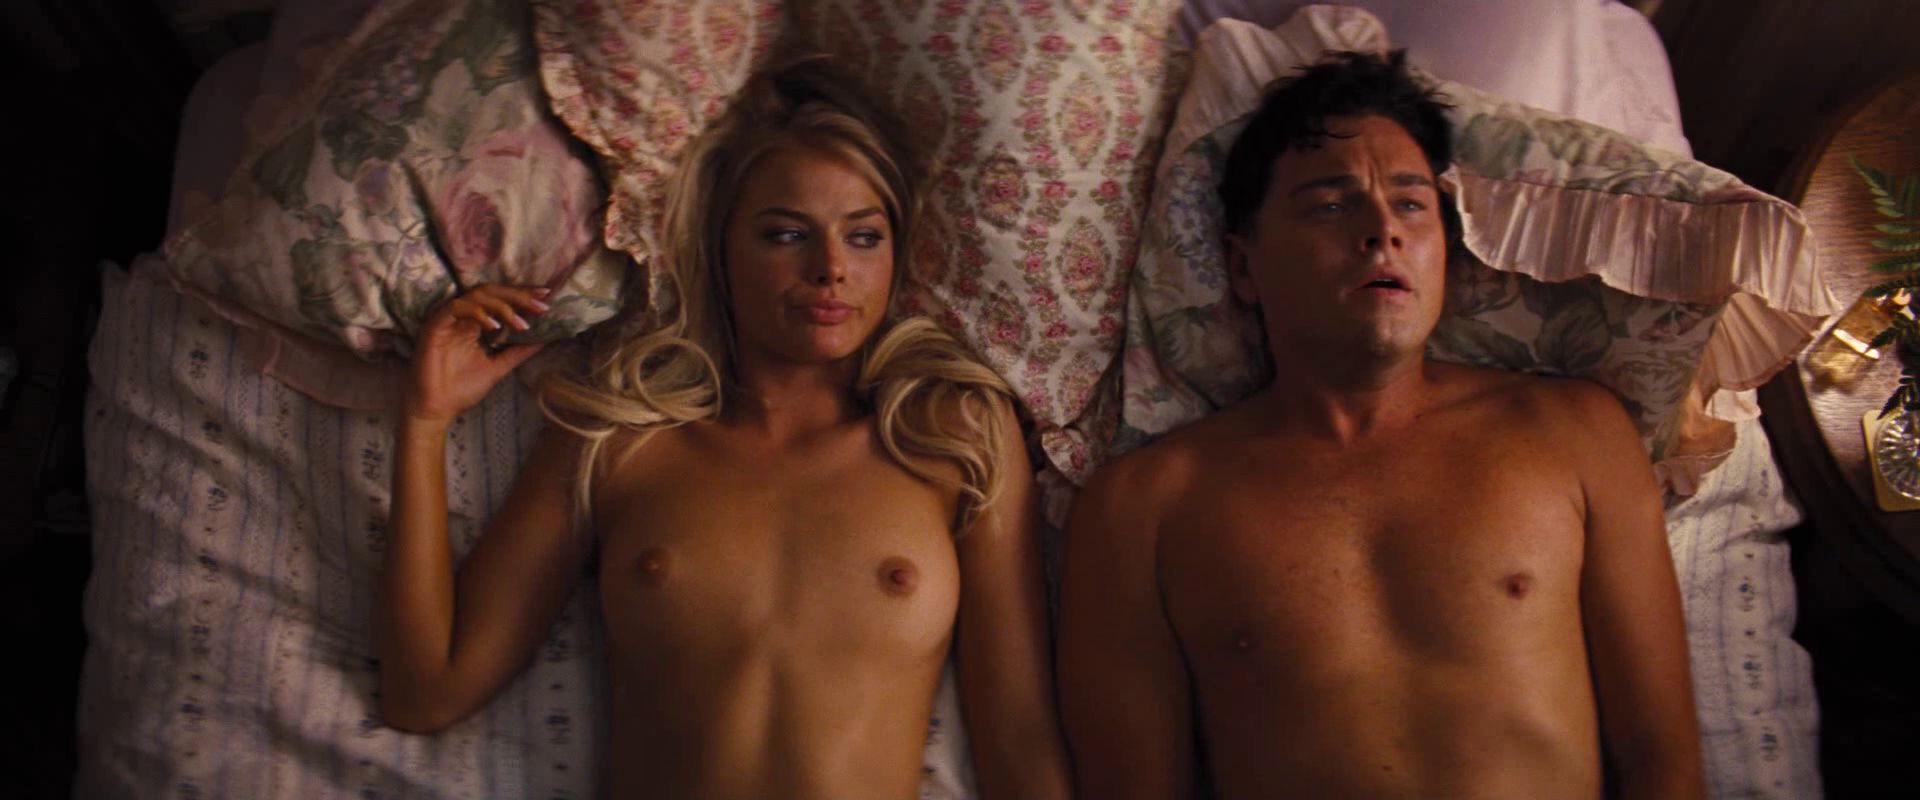 margot robbie wolf of wall street nude